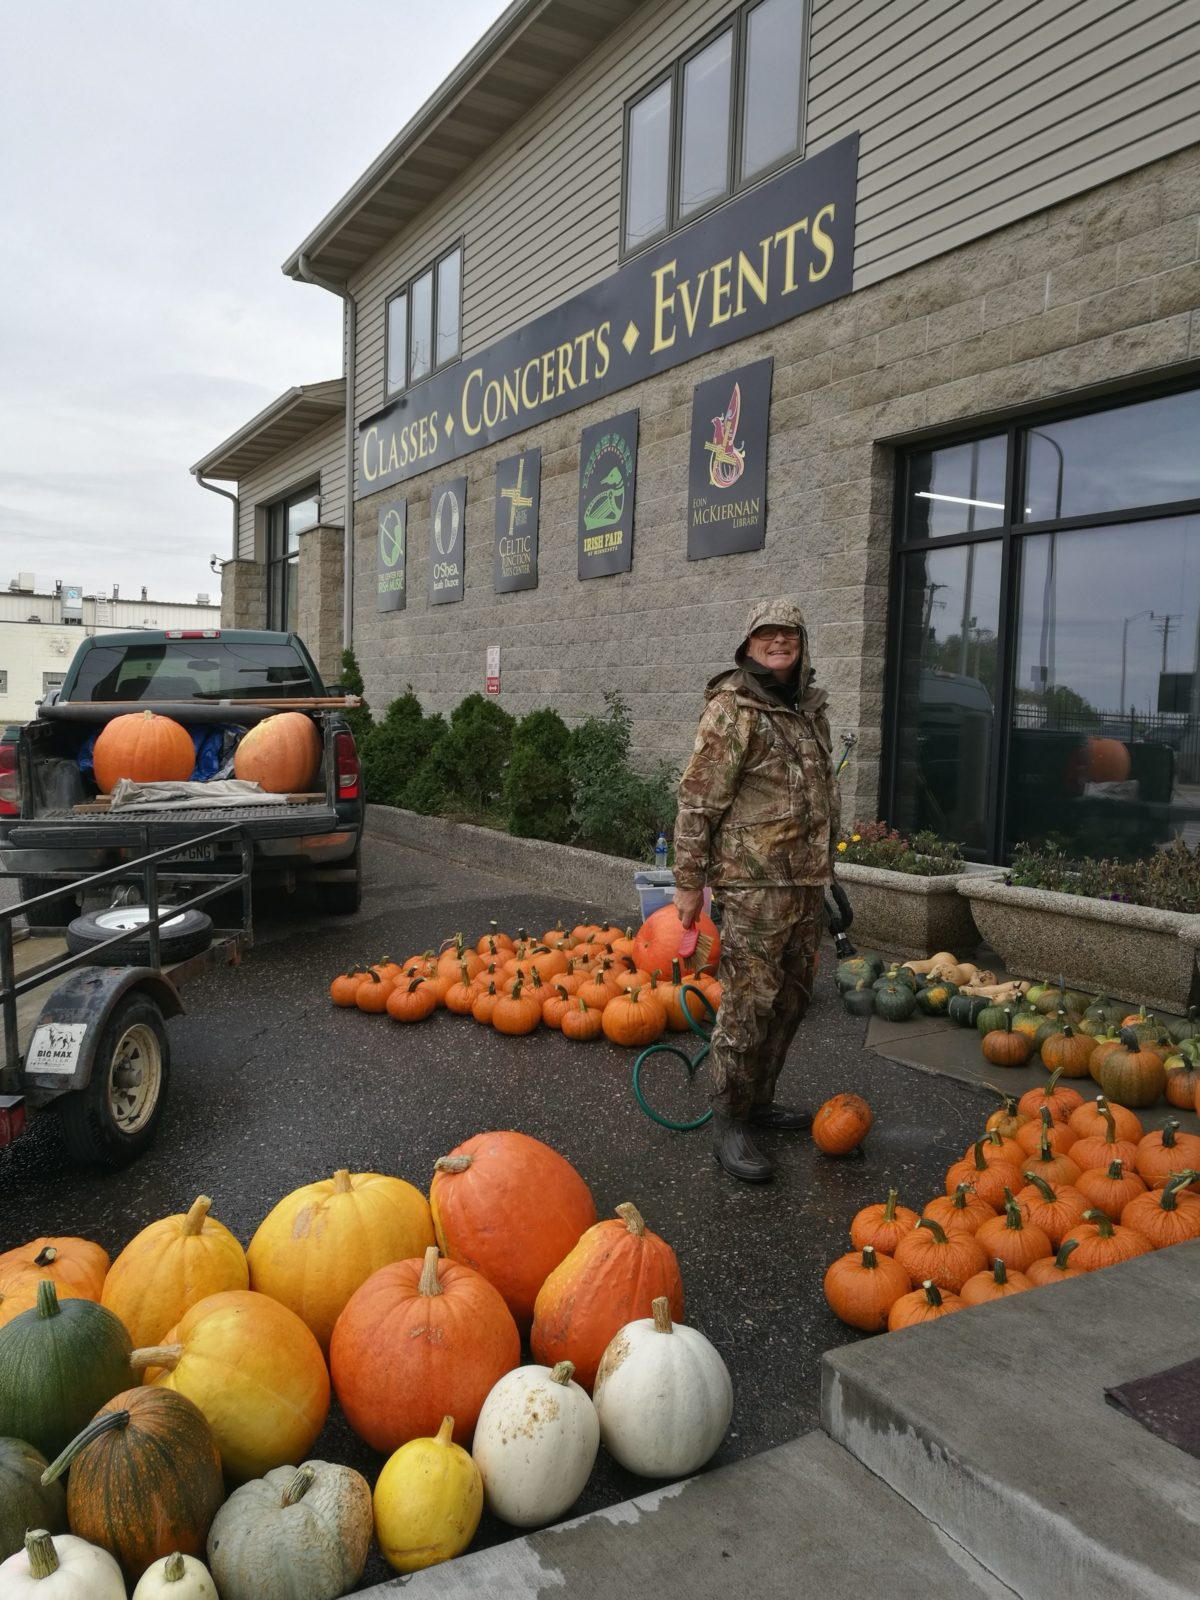 Pumpkin Jack stands proudly, though covered head to toe in camouflage, in front of the TCJ building with his pickup truck and trailer in the background. Surrounding him are piles of prodigious pumpkins. Pumpkins of various colors and shapes which he has just paused from washing. He looks delighted.